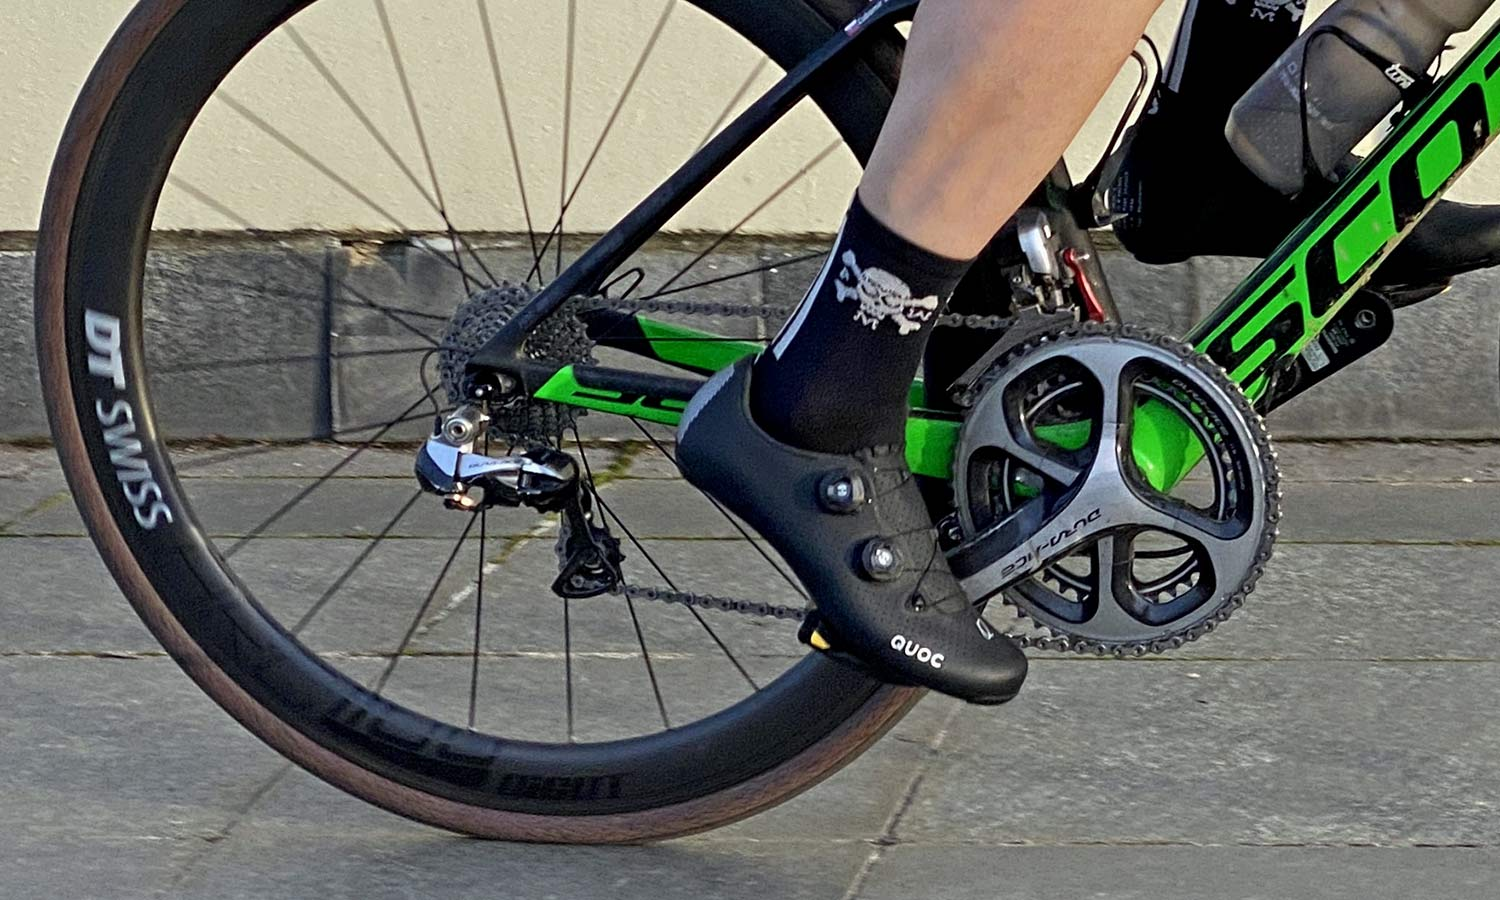 Quoc Mono II lightweight carbon-soled road cycling shoes Review,riding